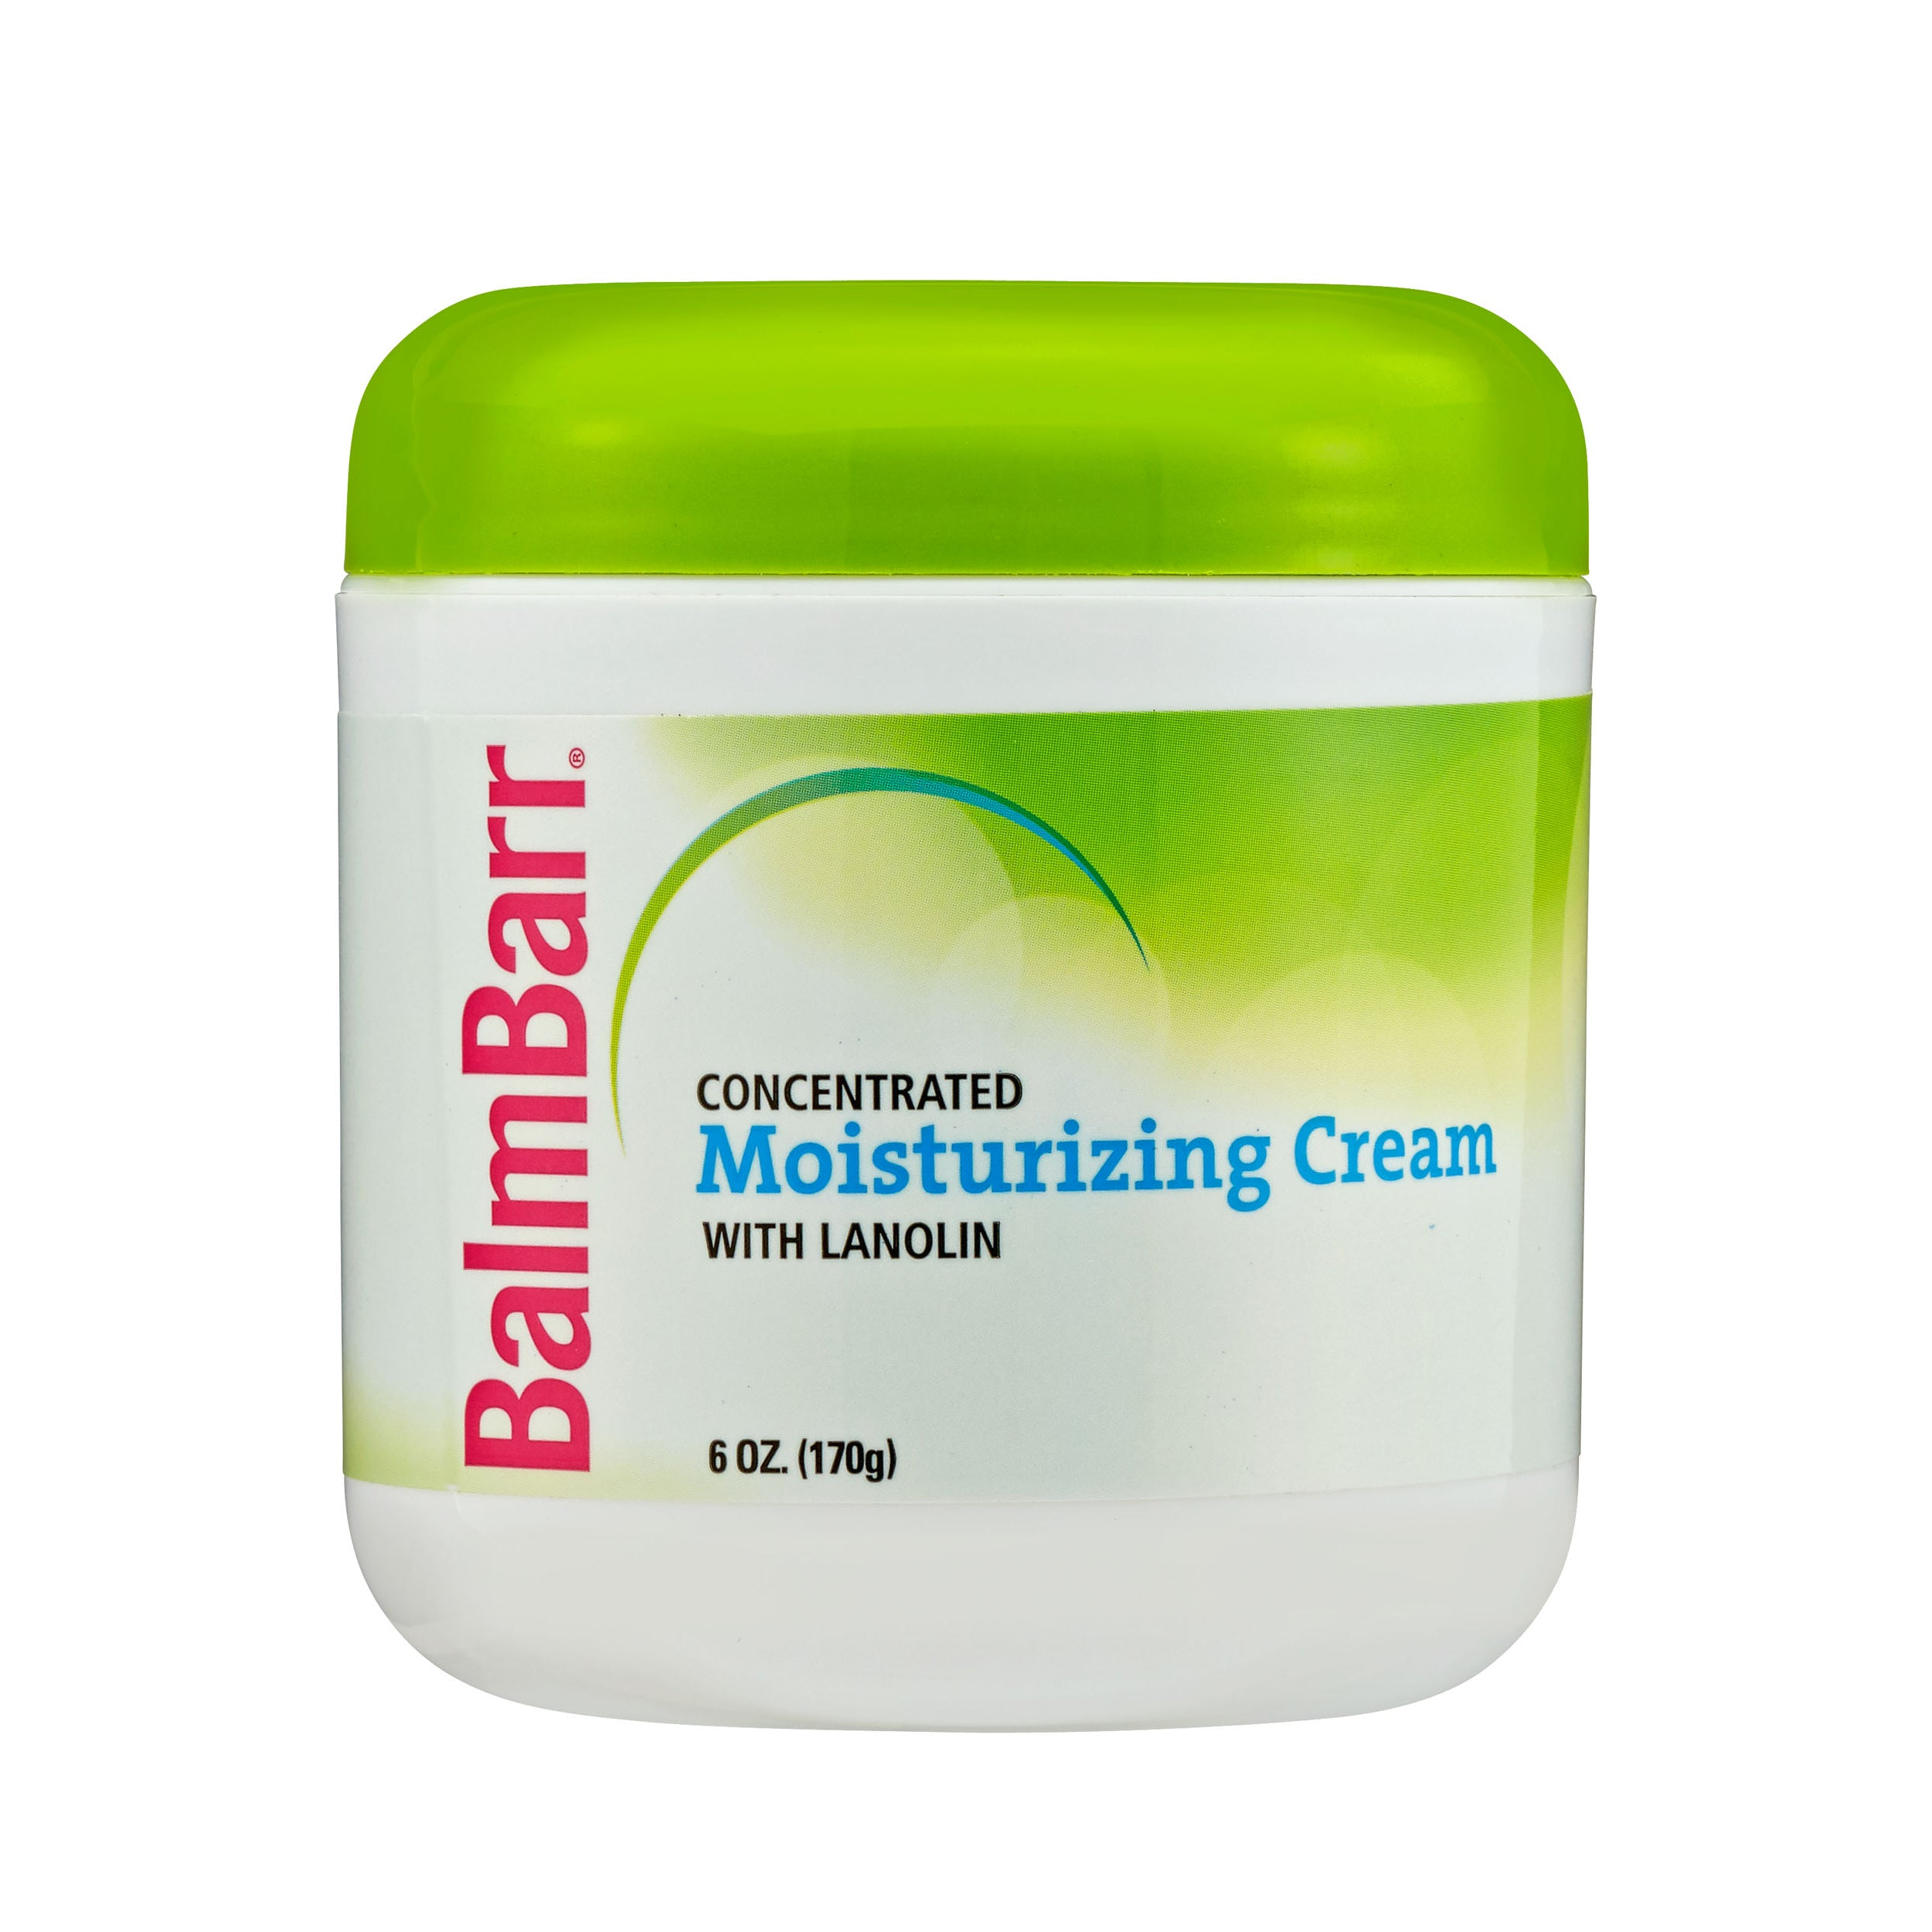 Balm Barr Whipped Moisturizing Cream